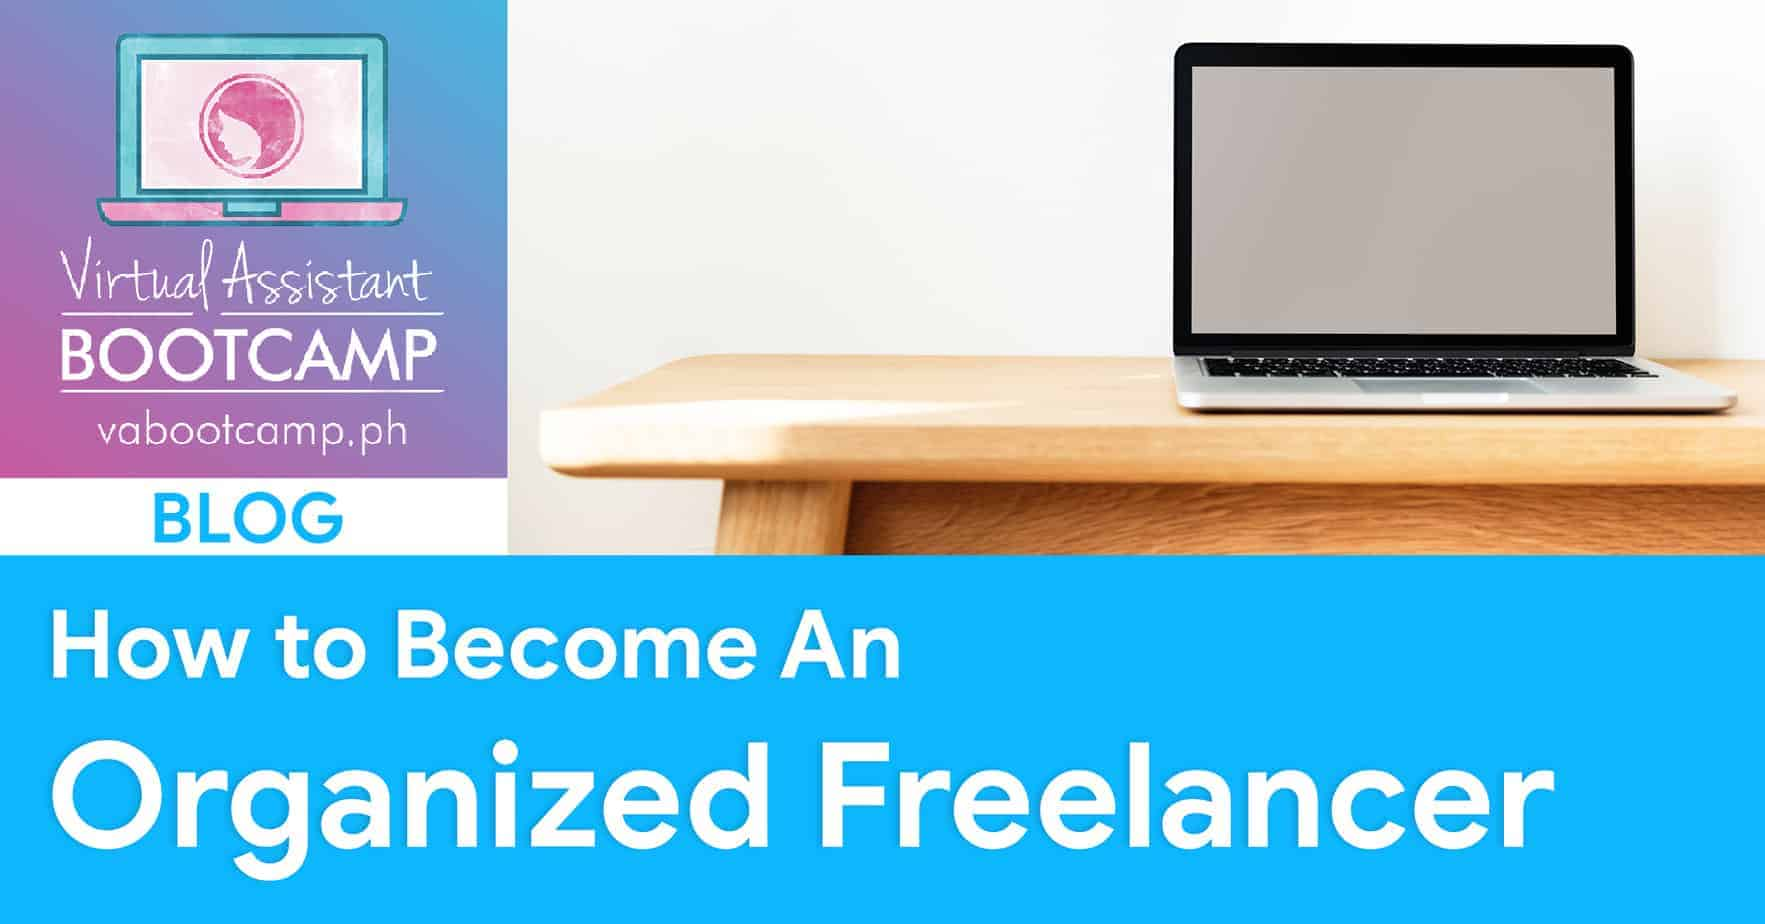 How to Become an Organized Freelancer